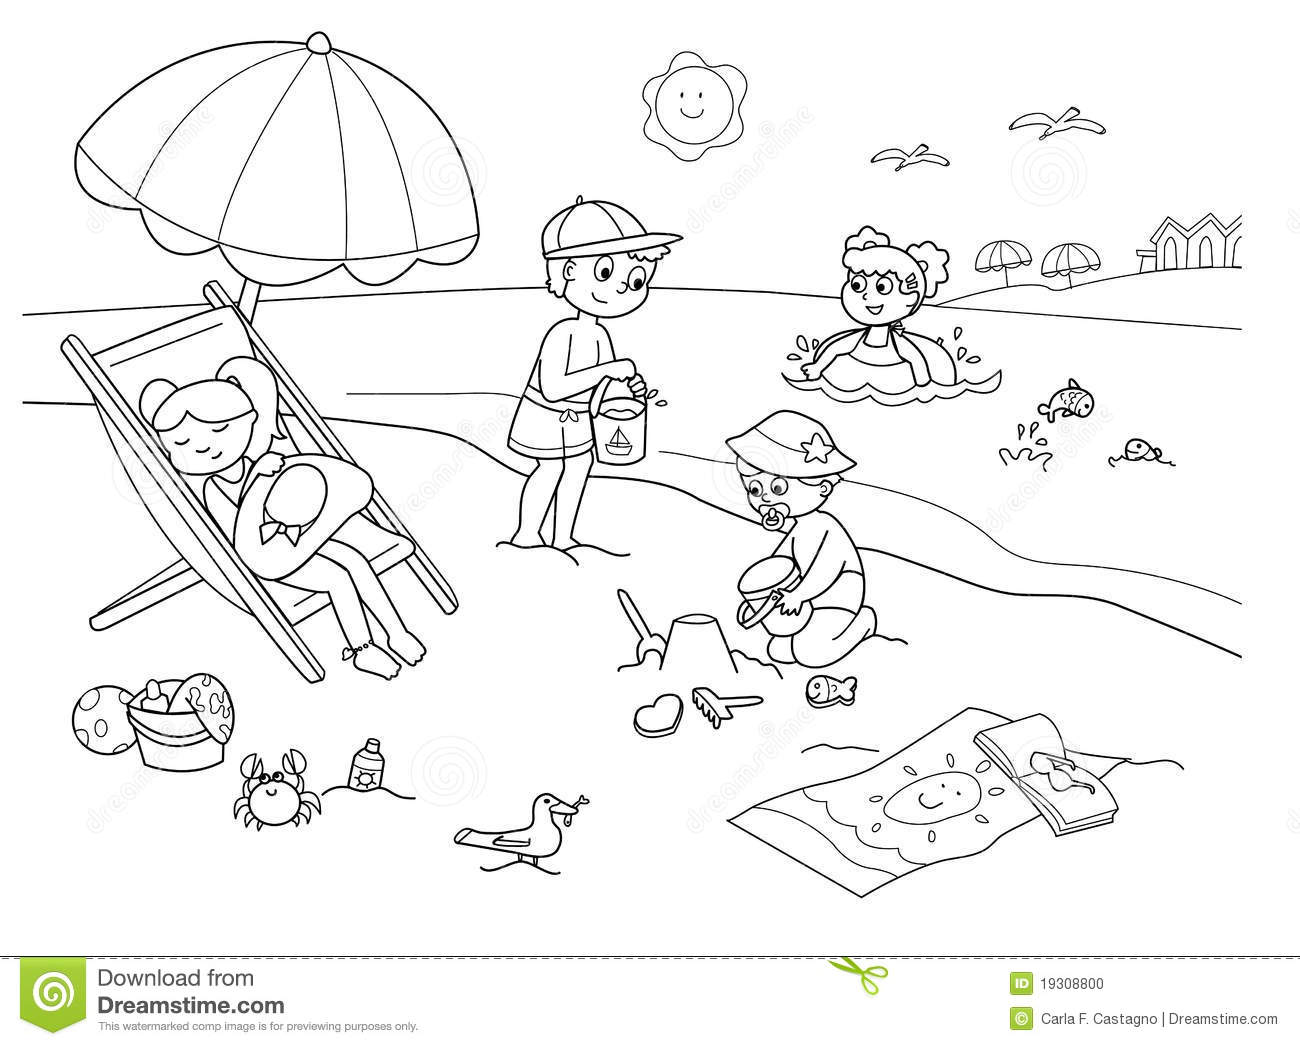 Beach clipart black and white jpg royalty free 20+ Beach Clipart Black And White | ClipartLook jpg royalty free